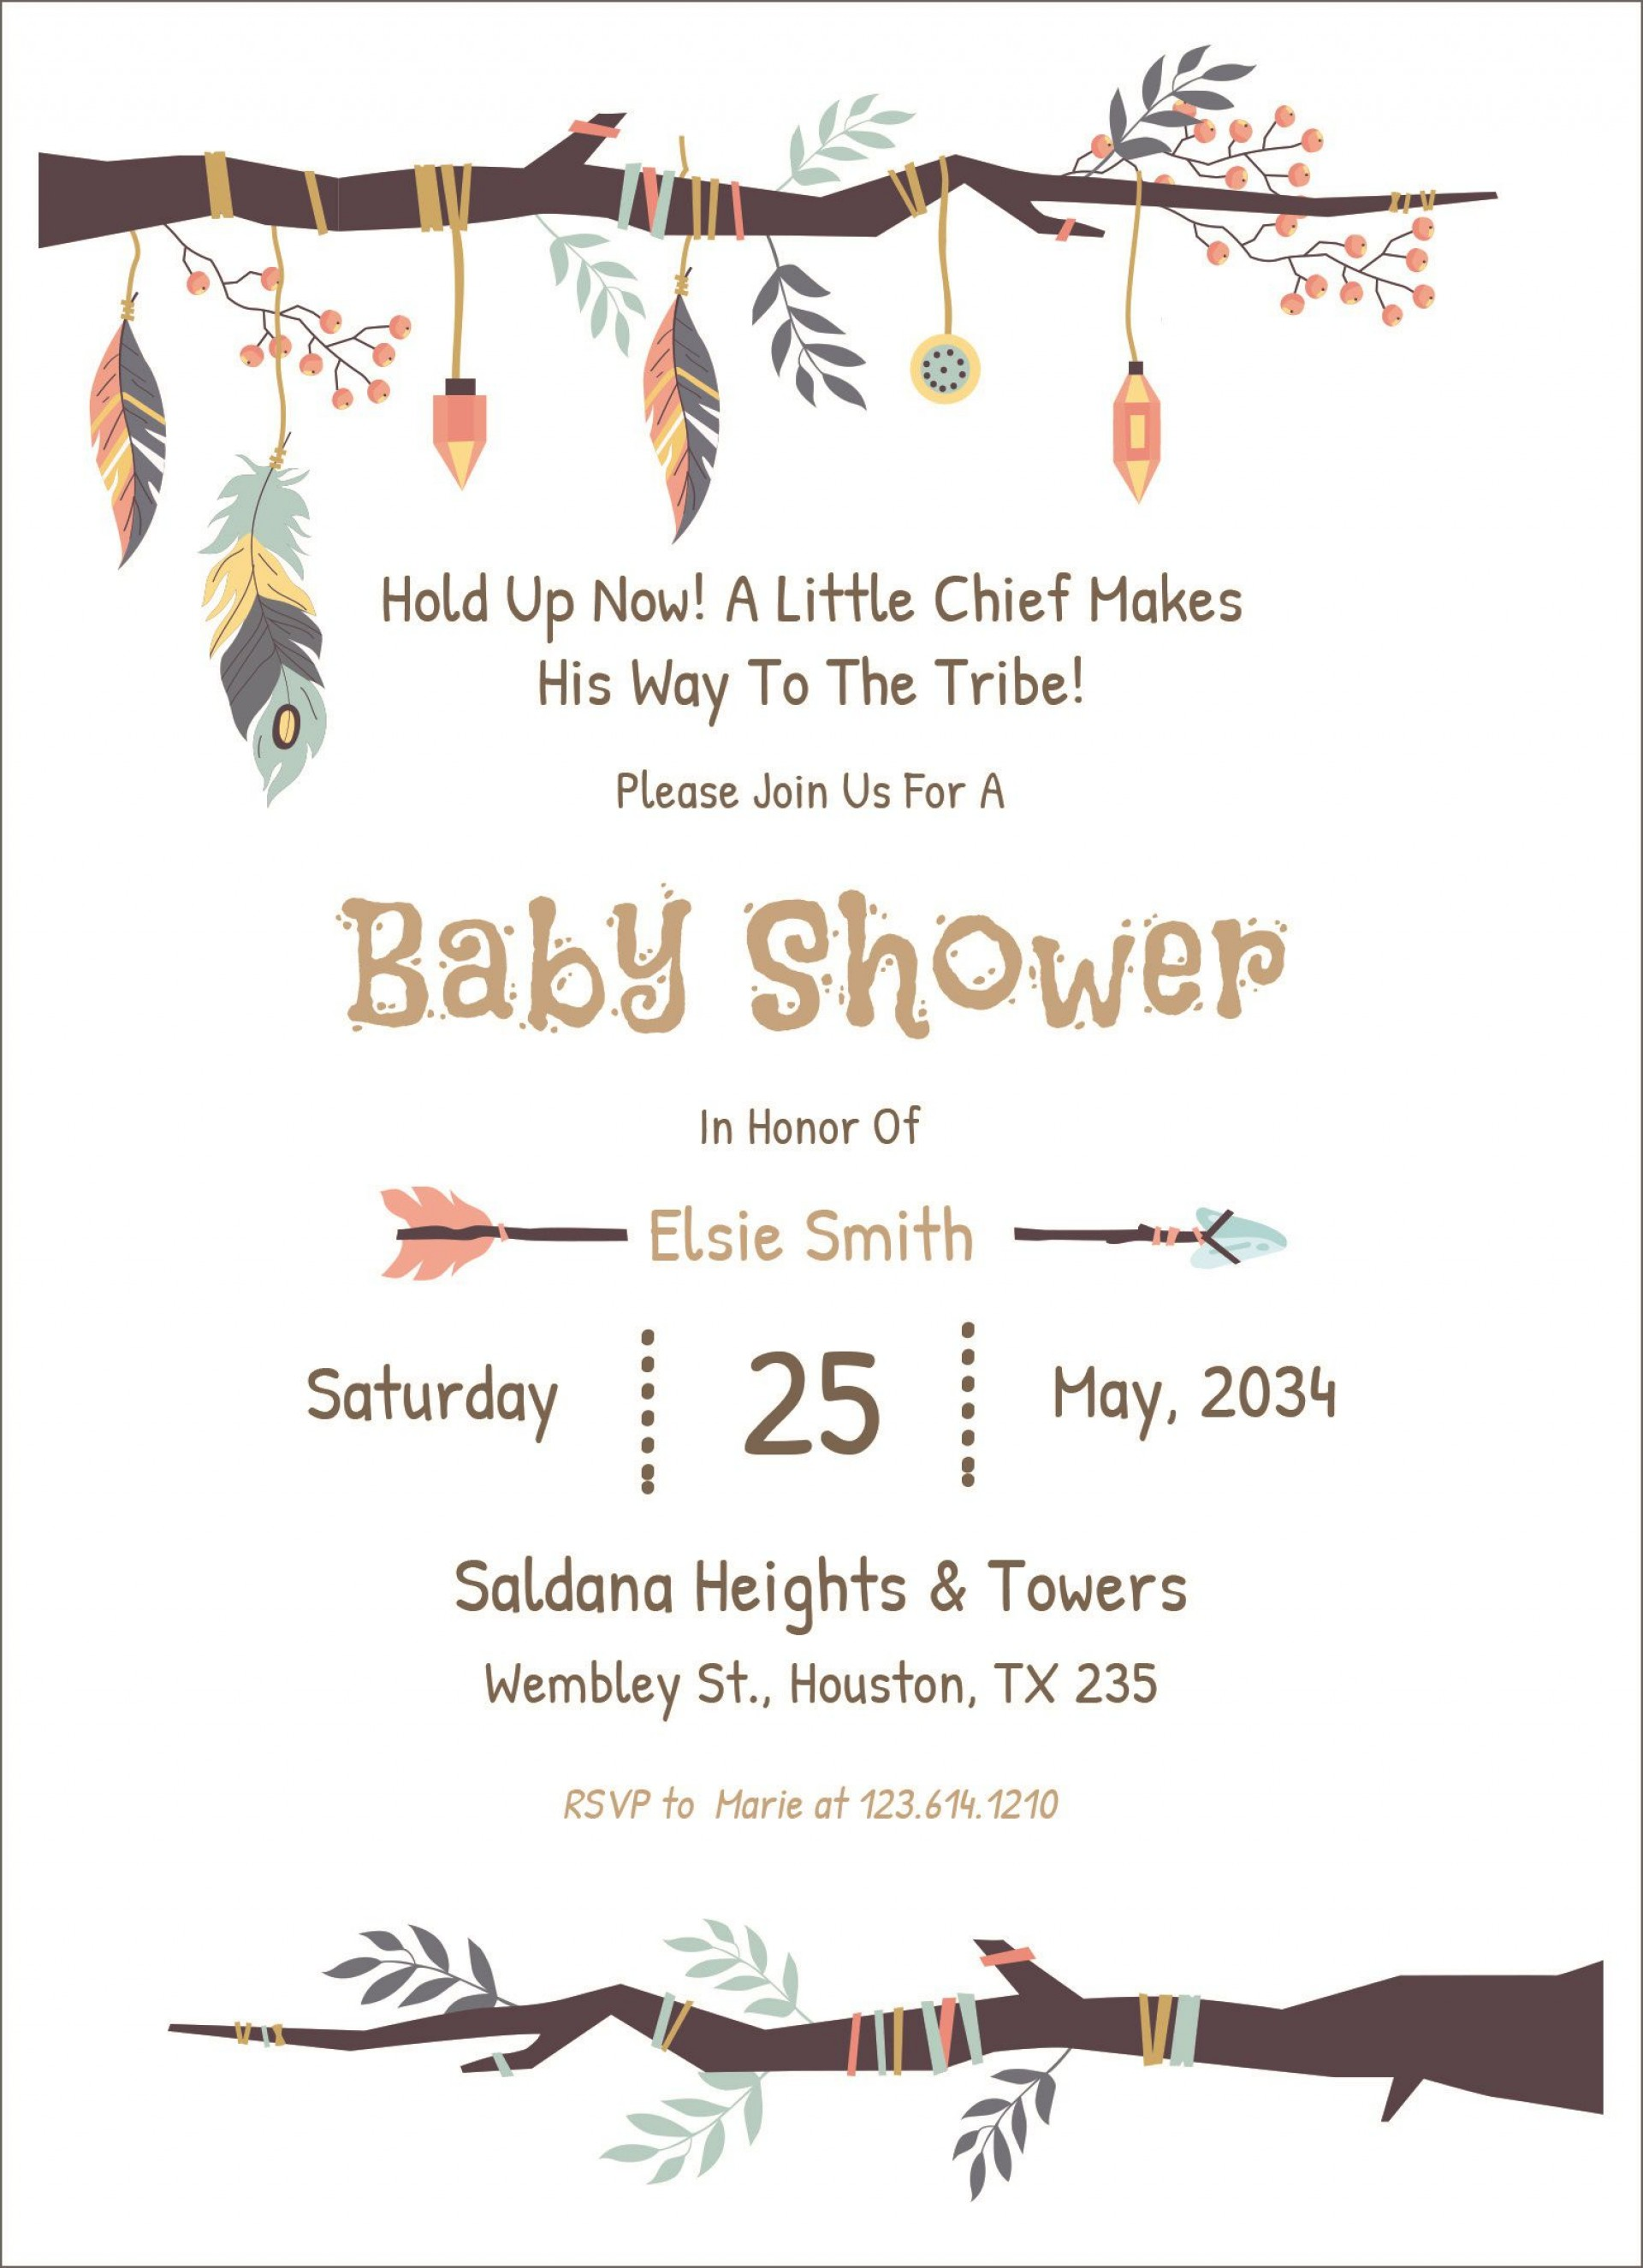 003 Staggering Baby Shower Announcement Template Picture  Templates Invitation India Indian Free With Photo1920